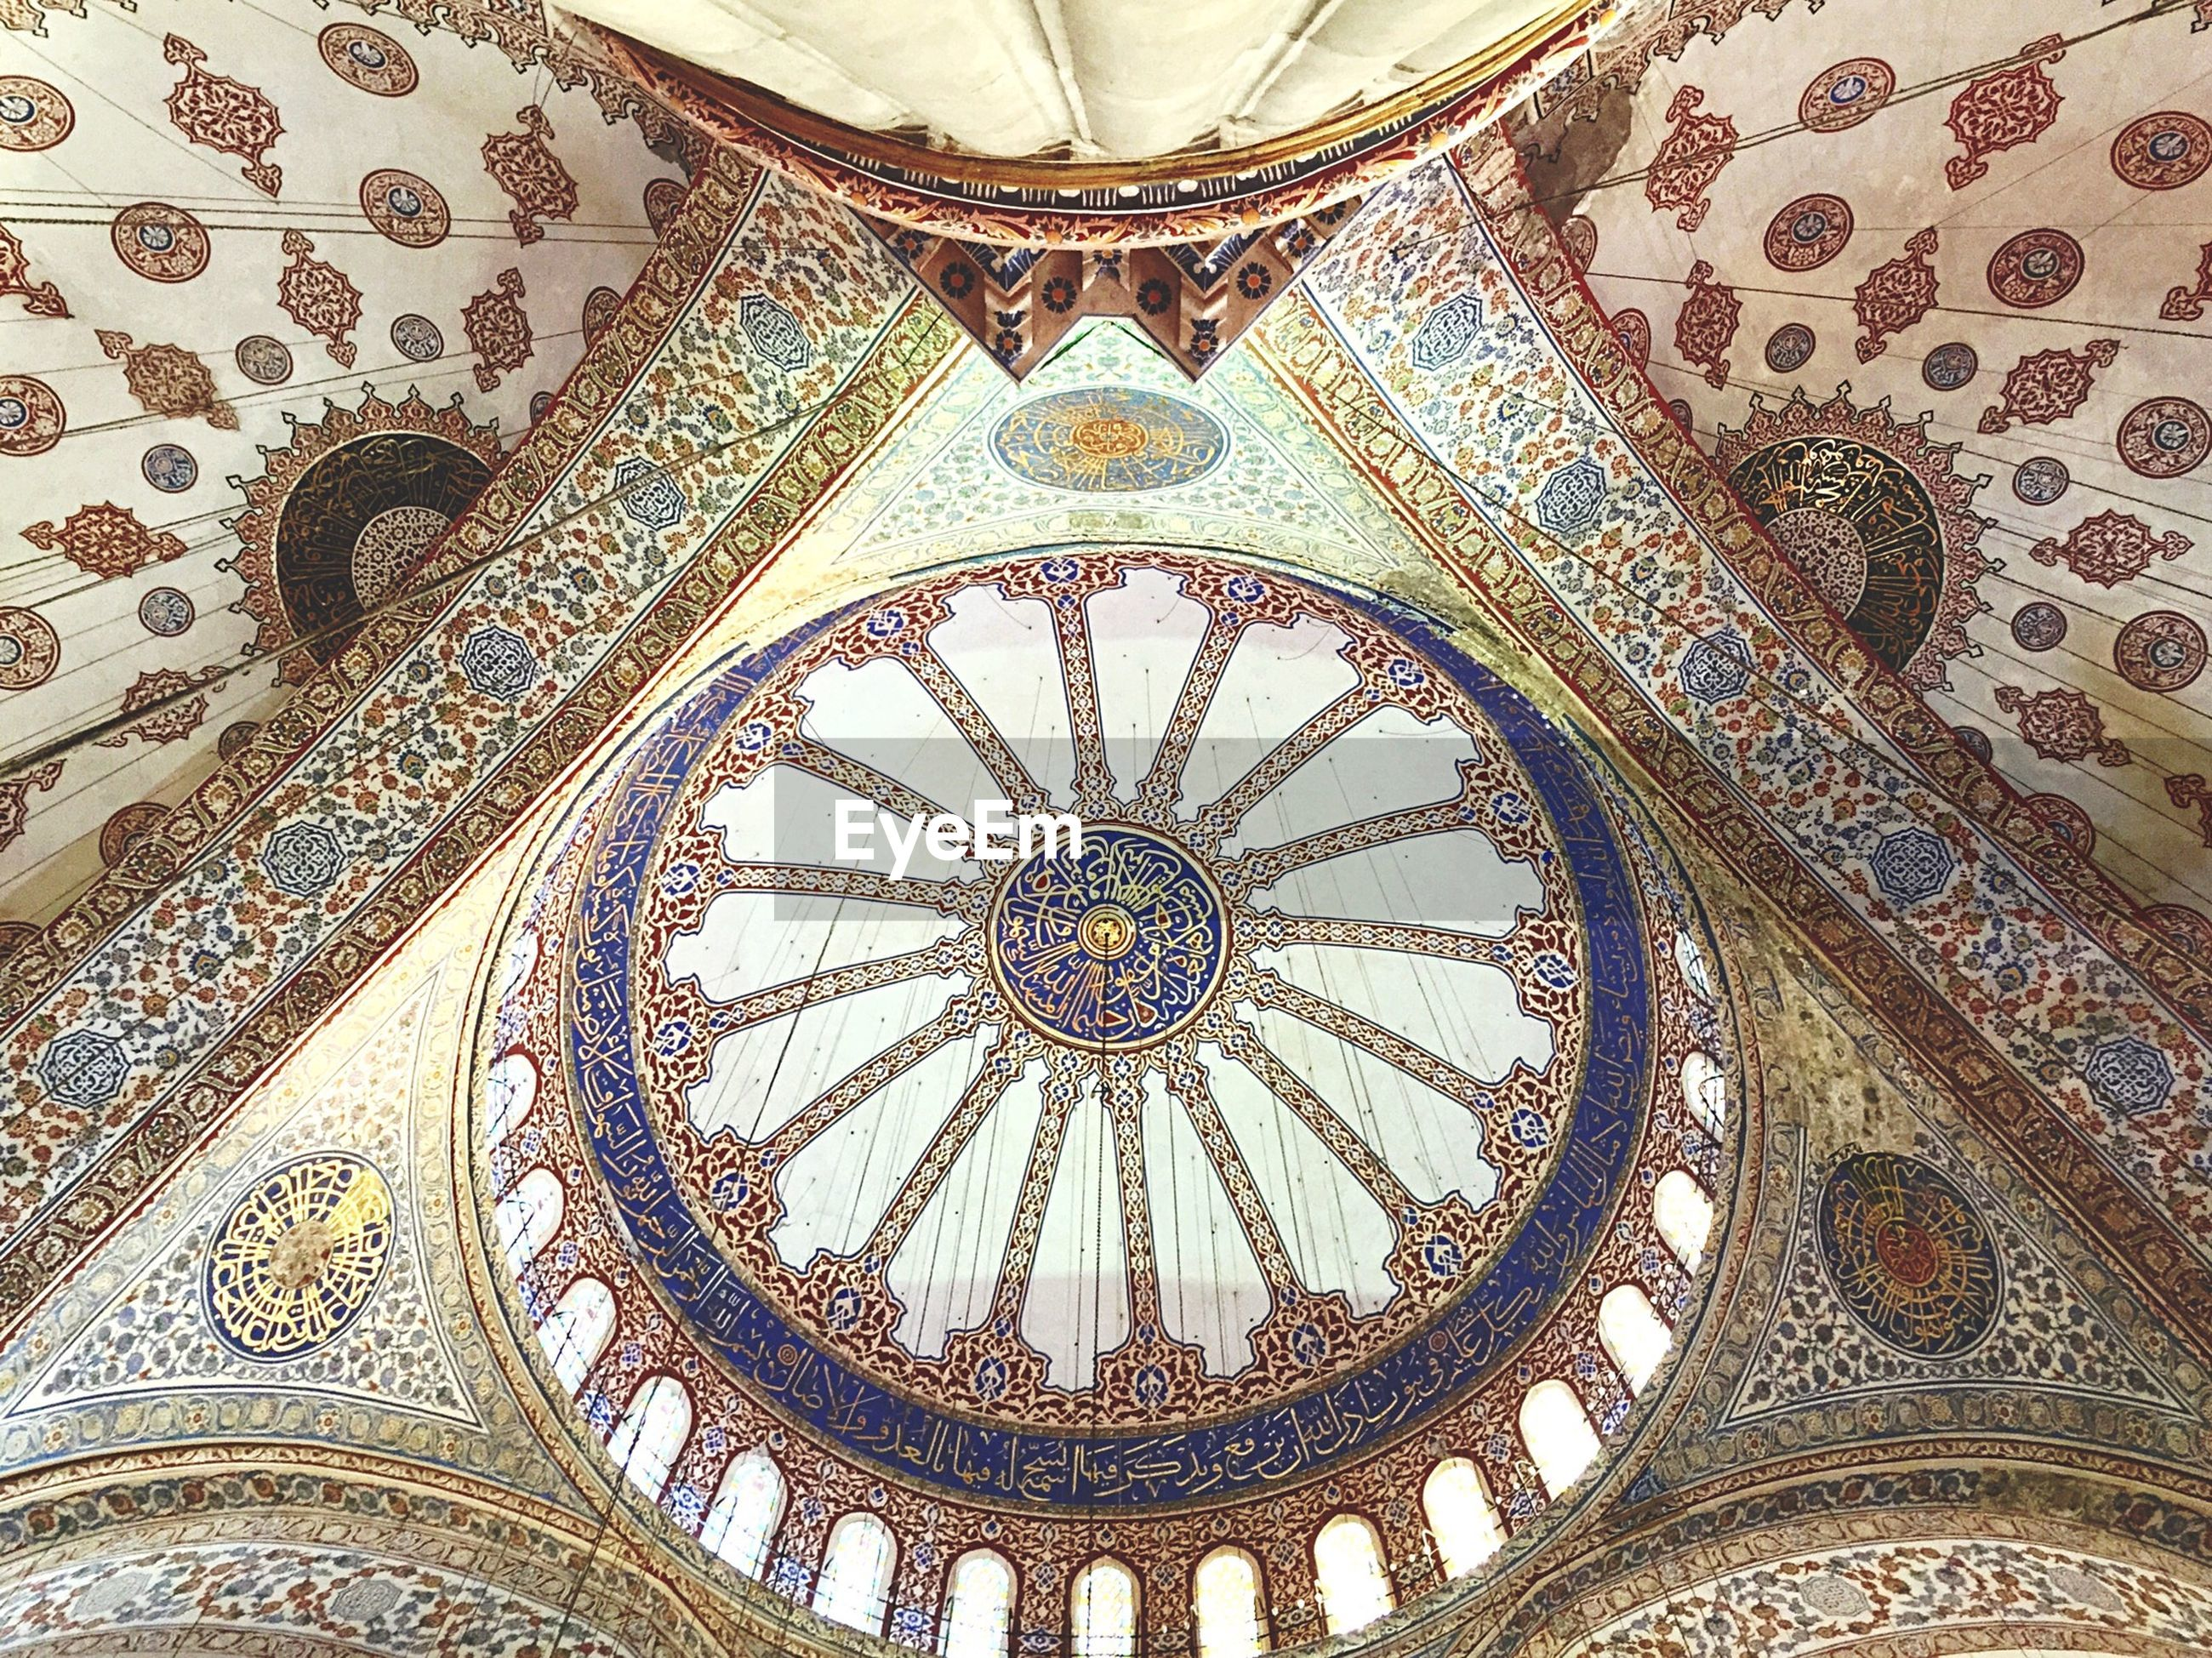 Symmetrical view of ornate mosque ceiling